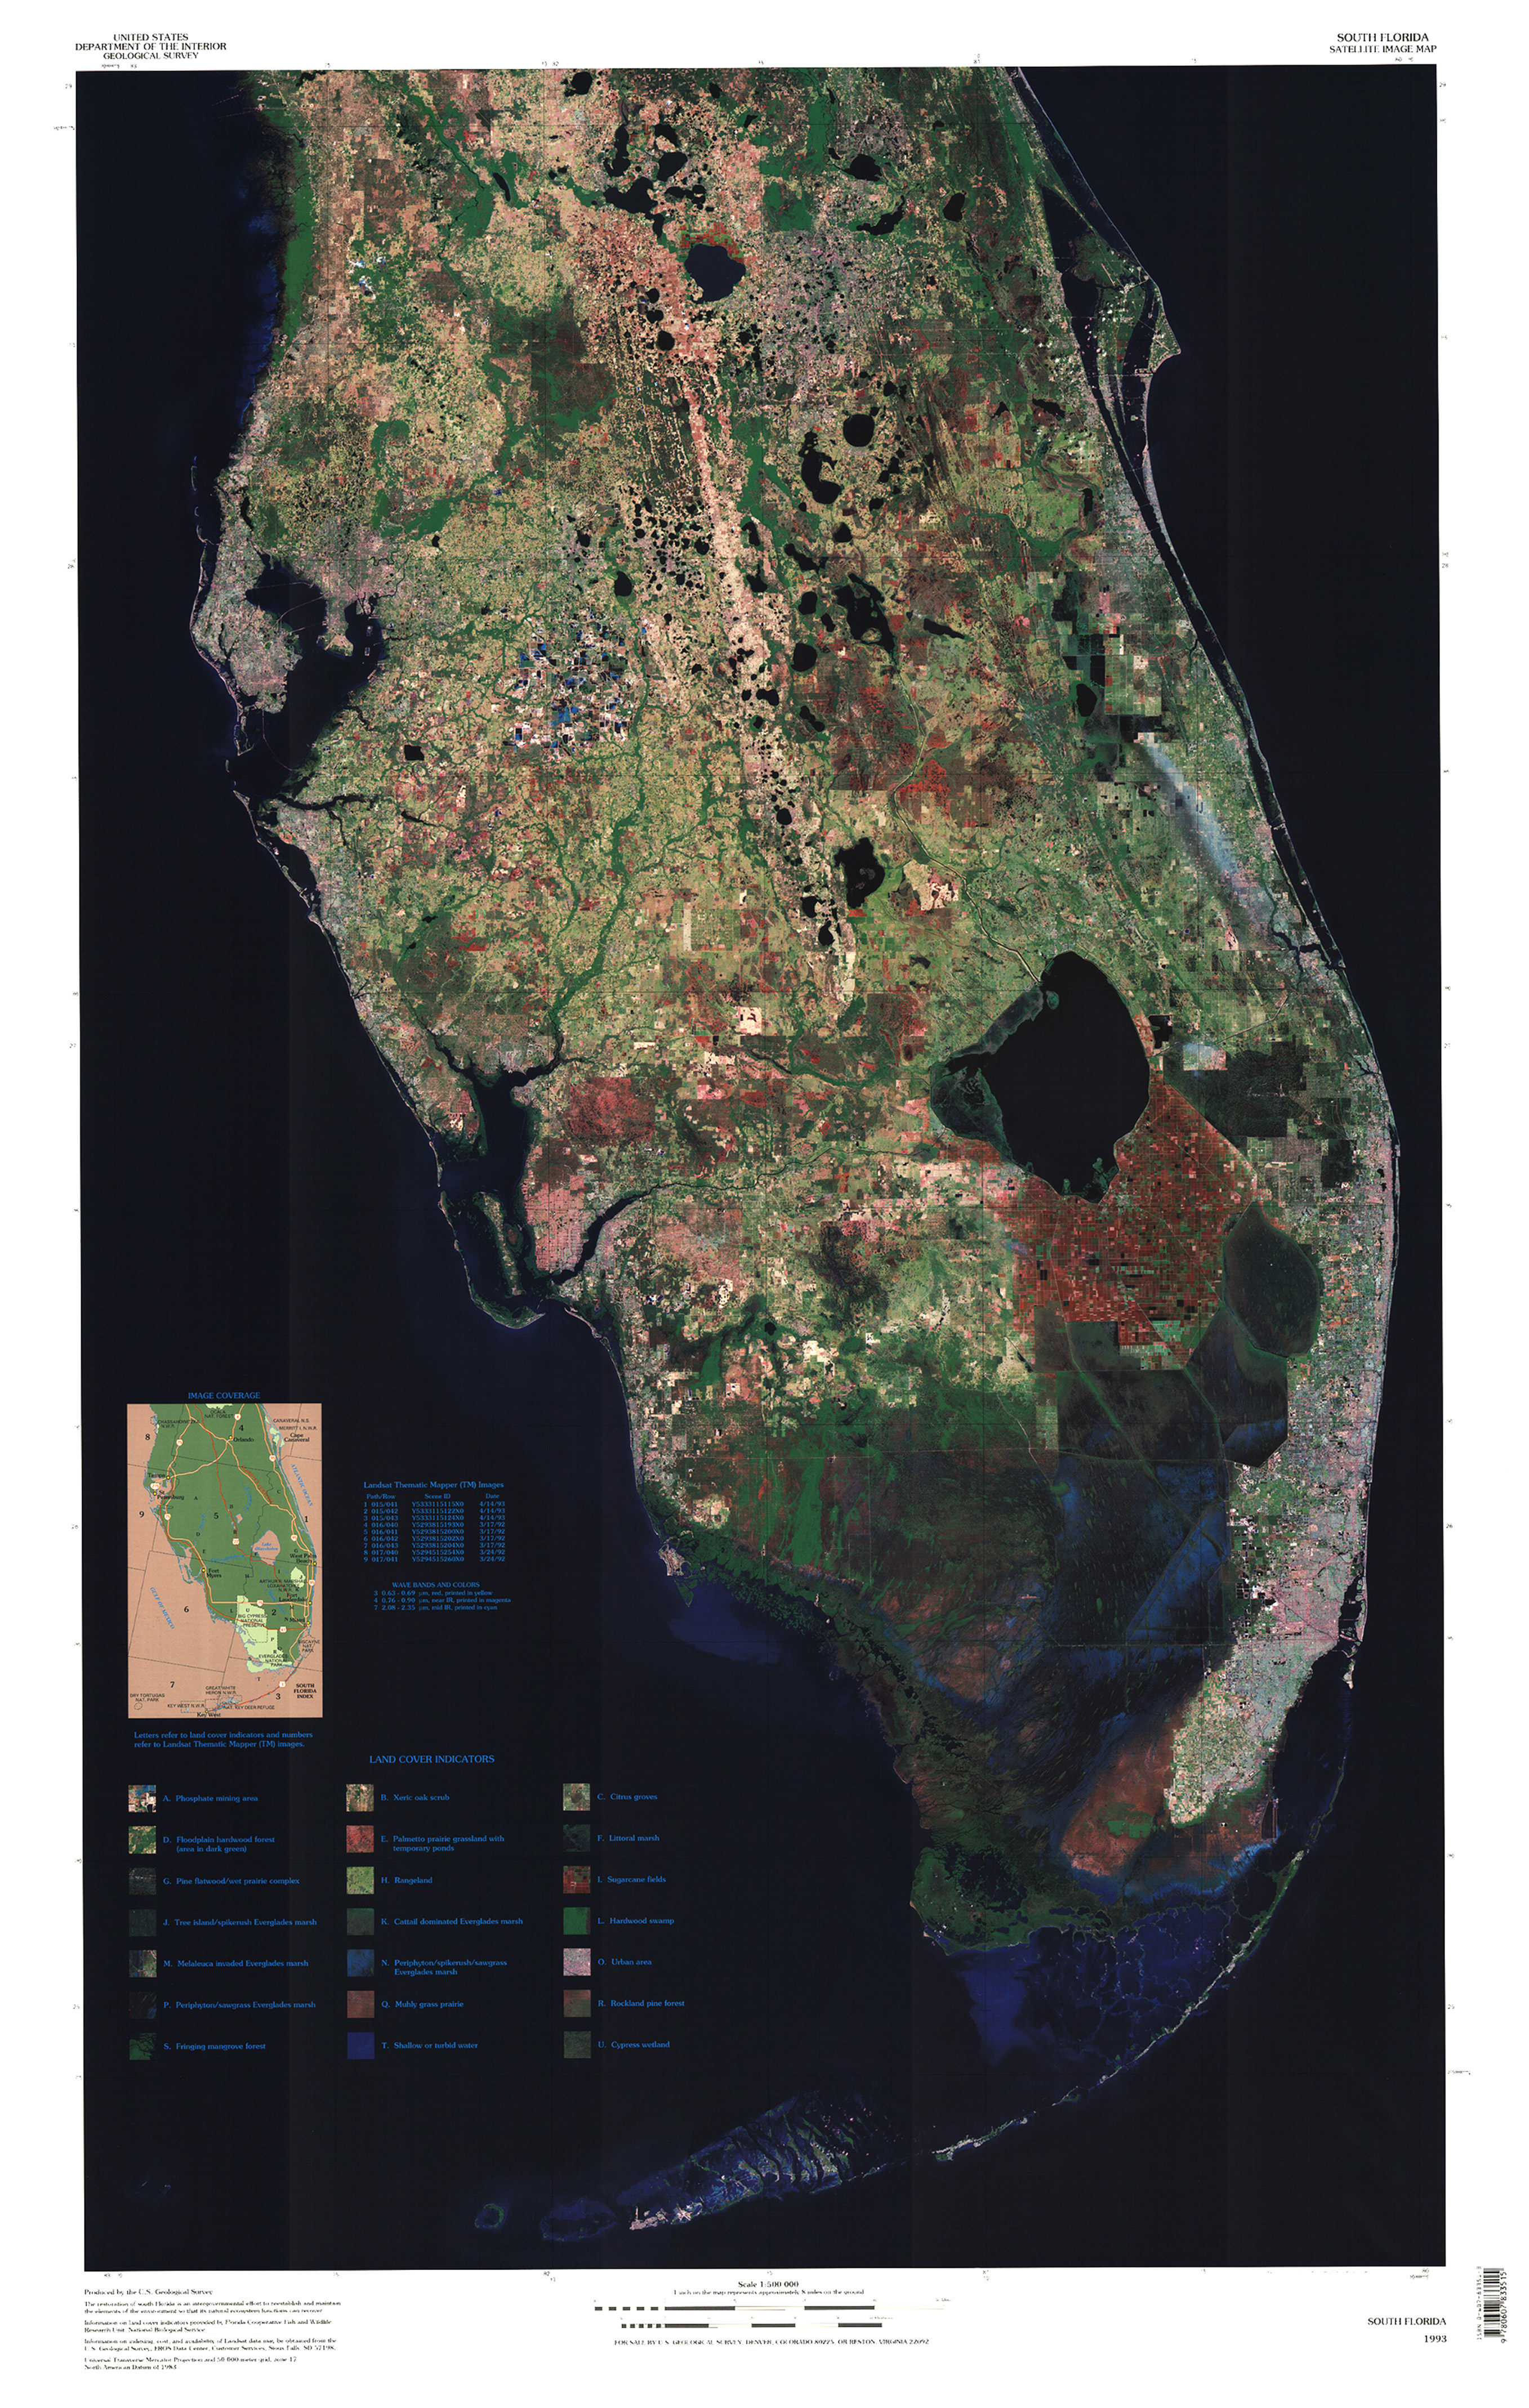 Geography and ecology of the Everglades - Wikipedia on satellite view of orlando, satellite map view house, satellite maps of usa,